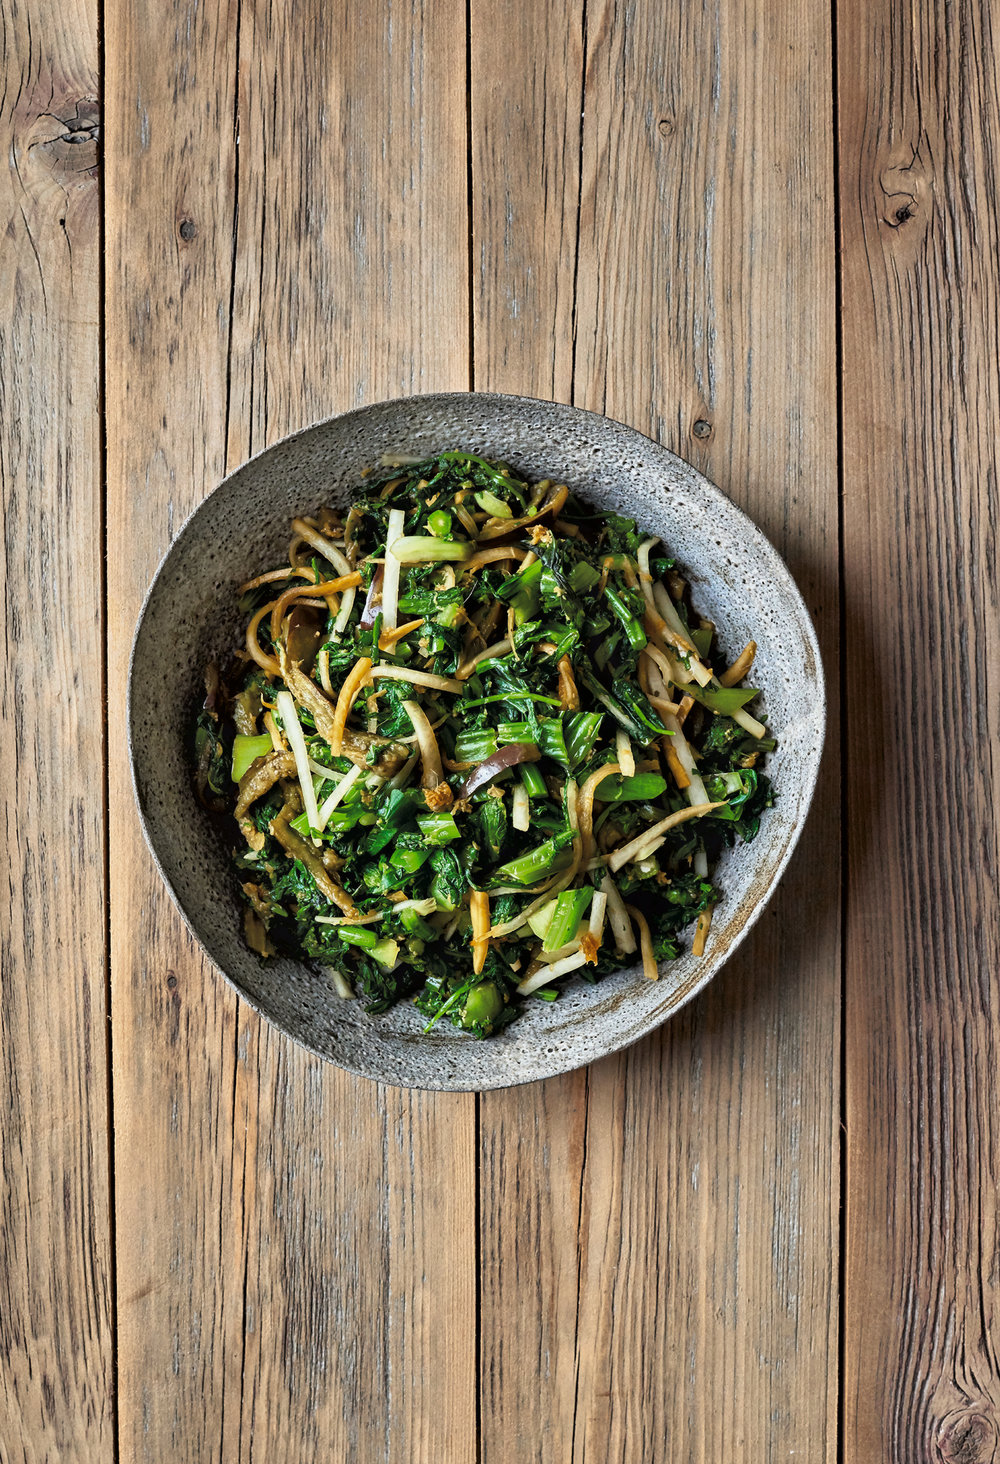 Ginger-Infused Greens and Vegetables